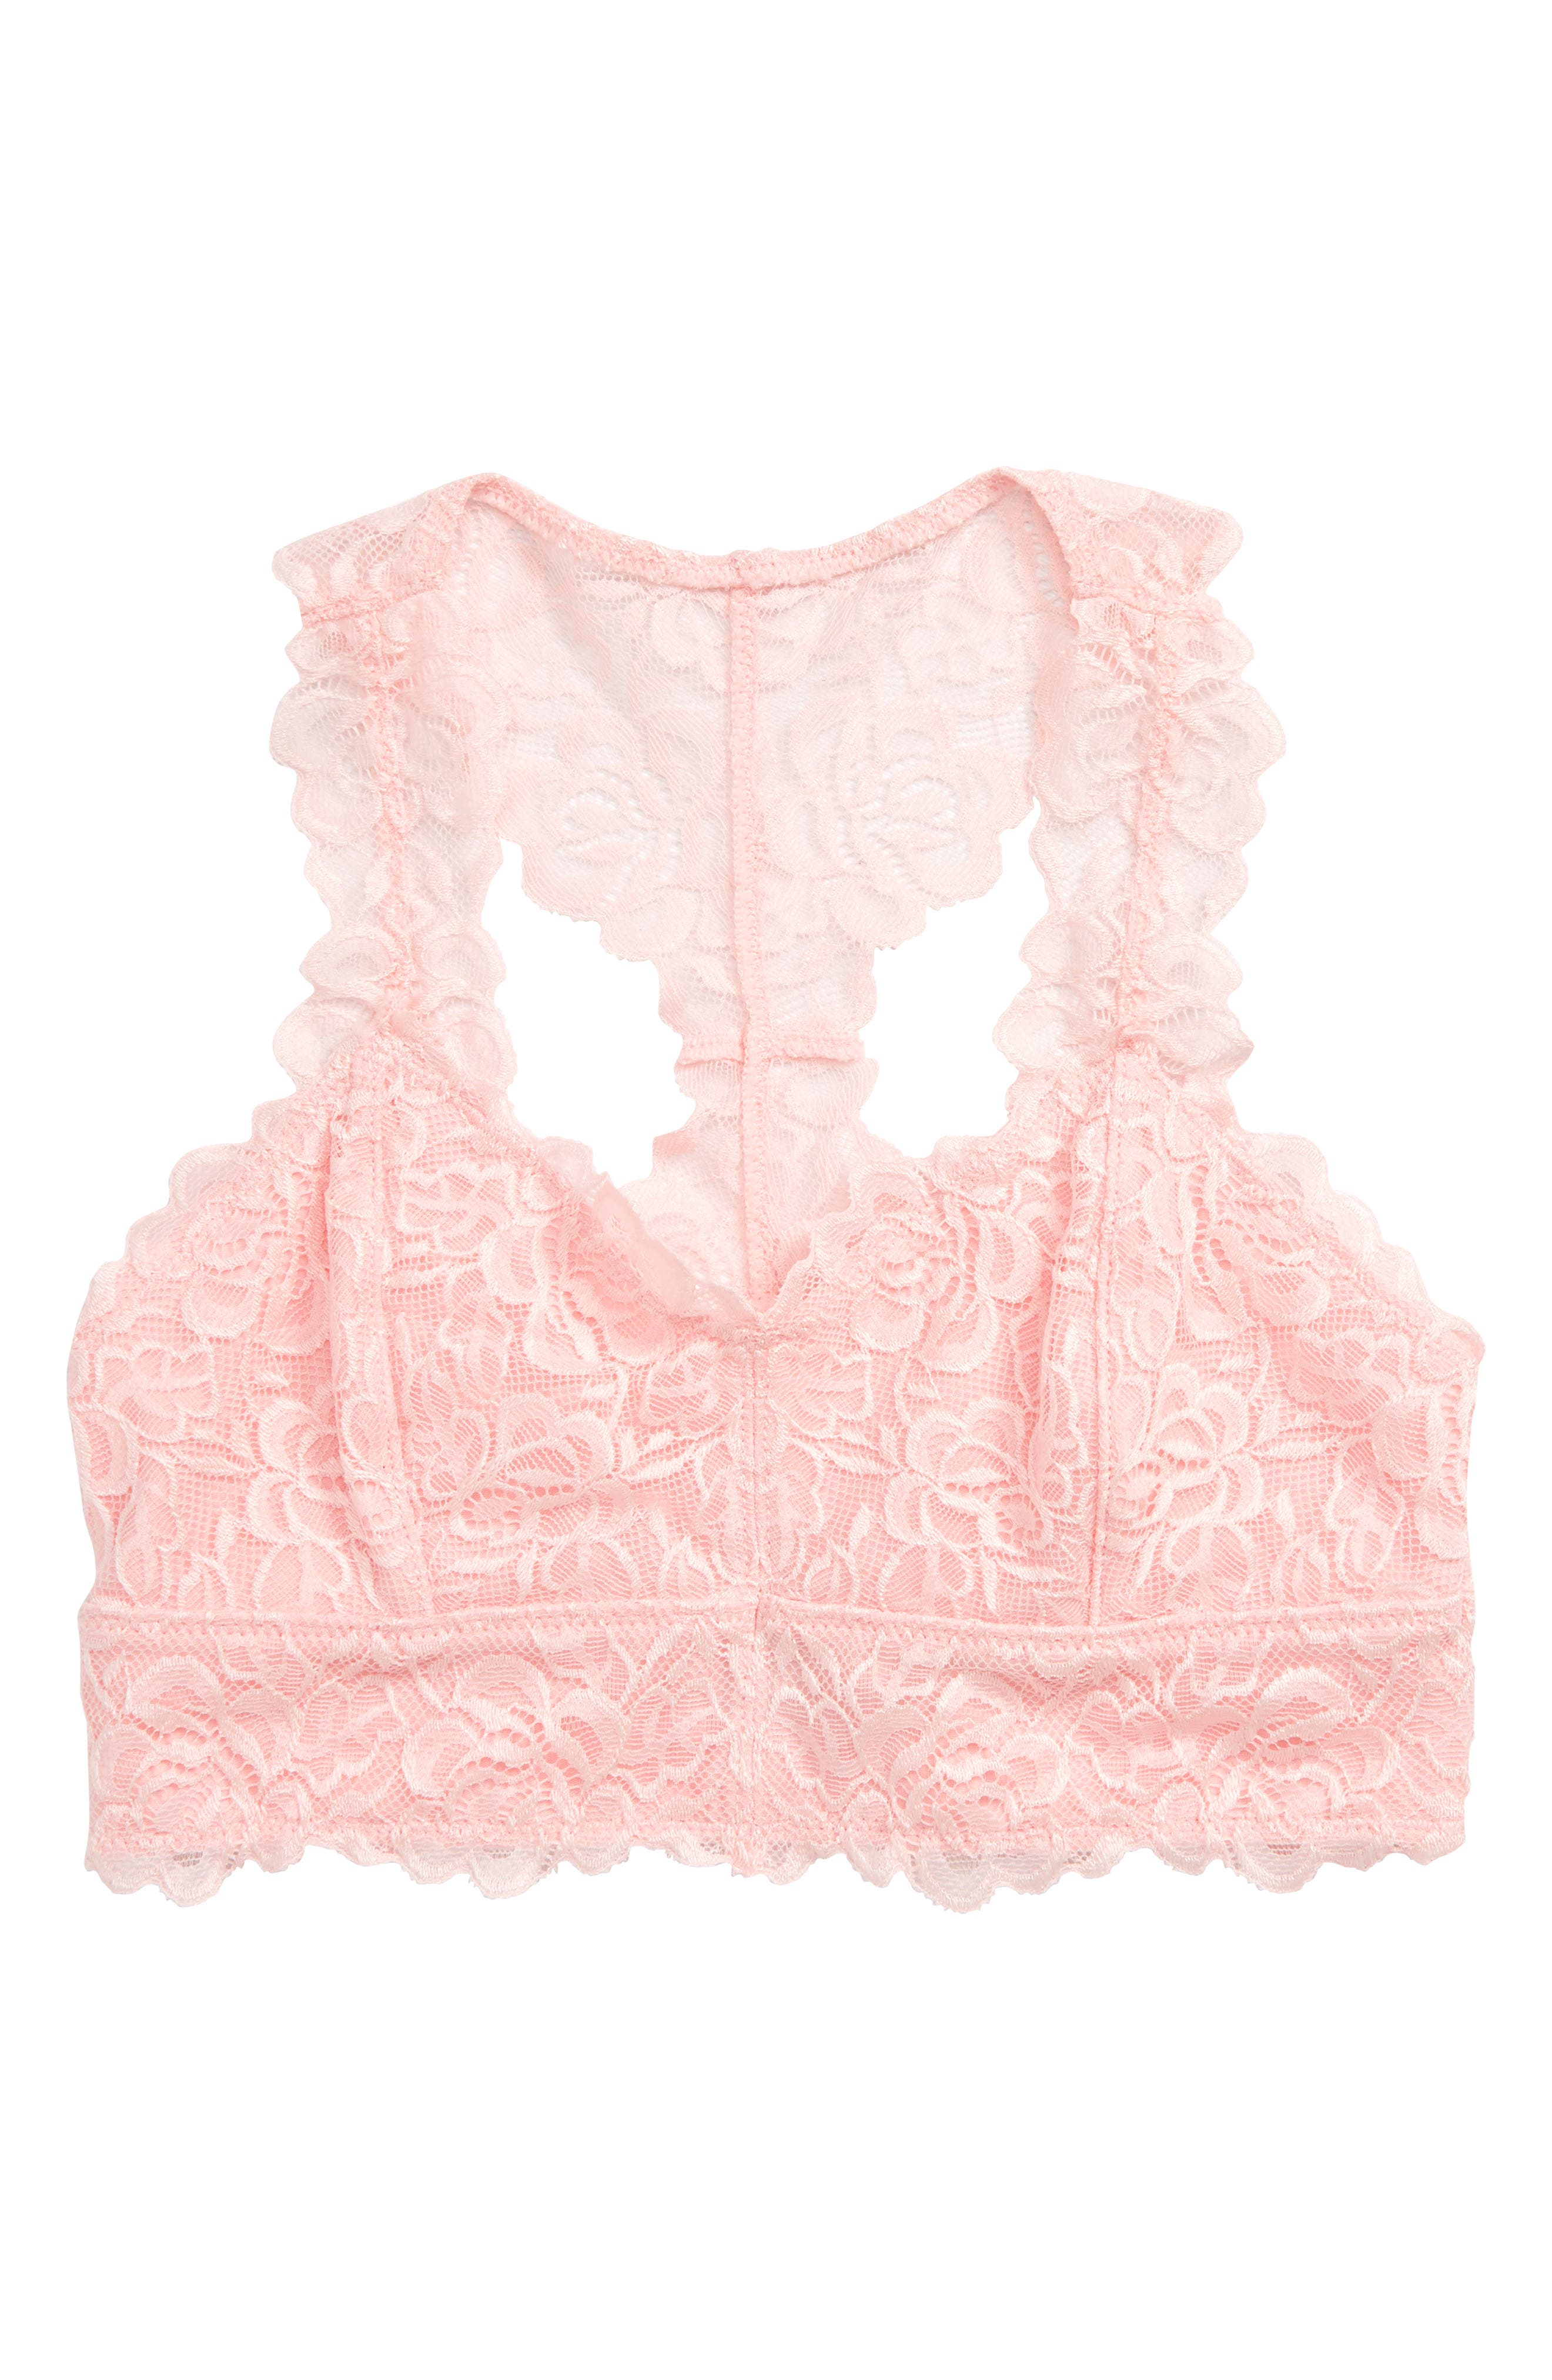 TUCKER + TATE Lace Bralette, Main, color, PINK BABY